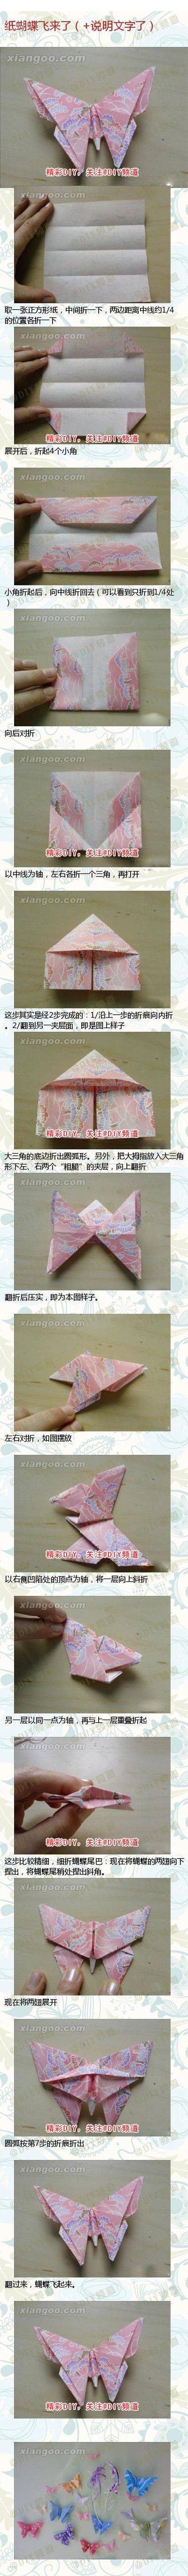 Origami Moth Butterfly Paper Folding Photo Tutorial How To DIY